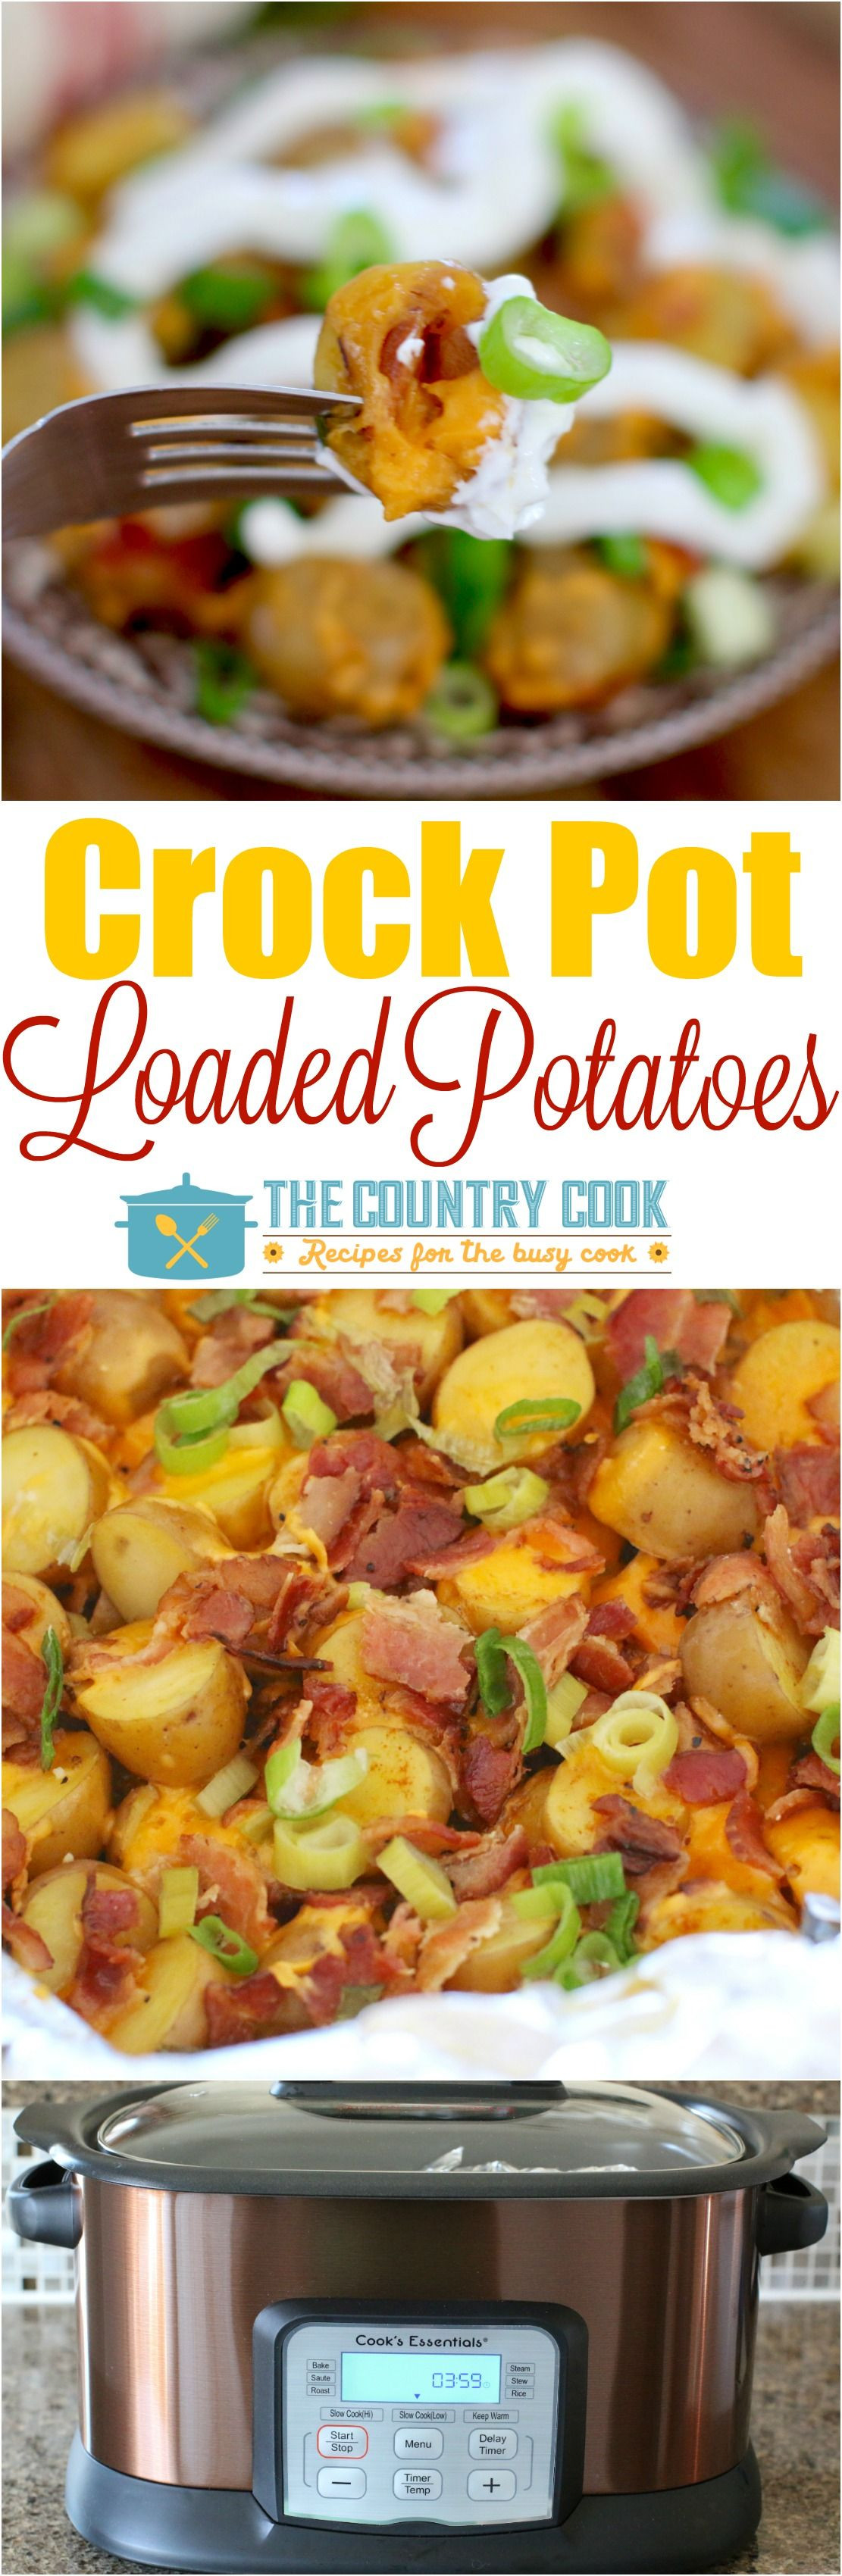 Crockpot Potato Recipes  Loaded Crock Pot Little Potatoes Recipe